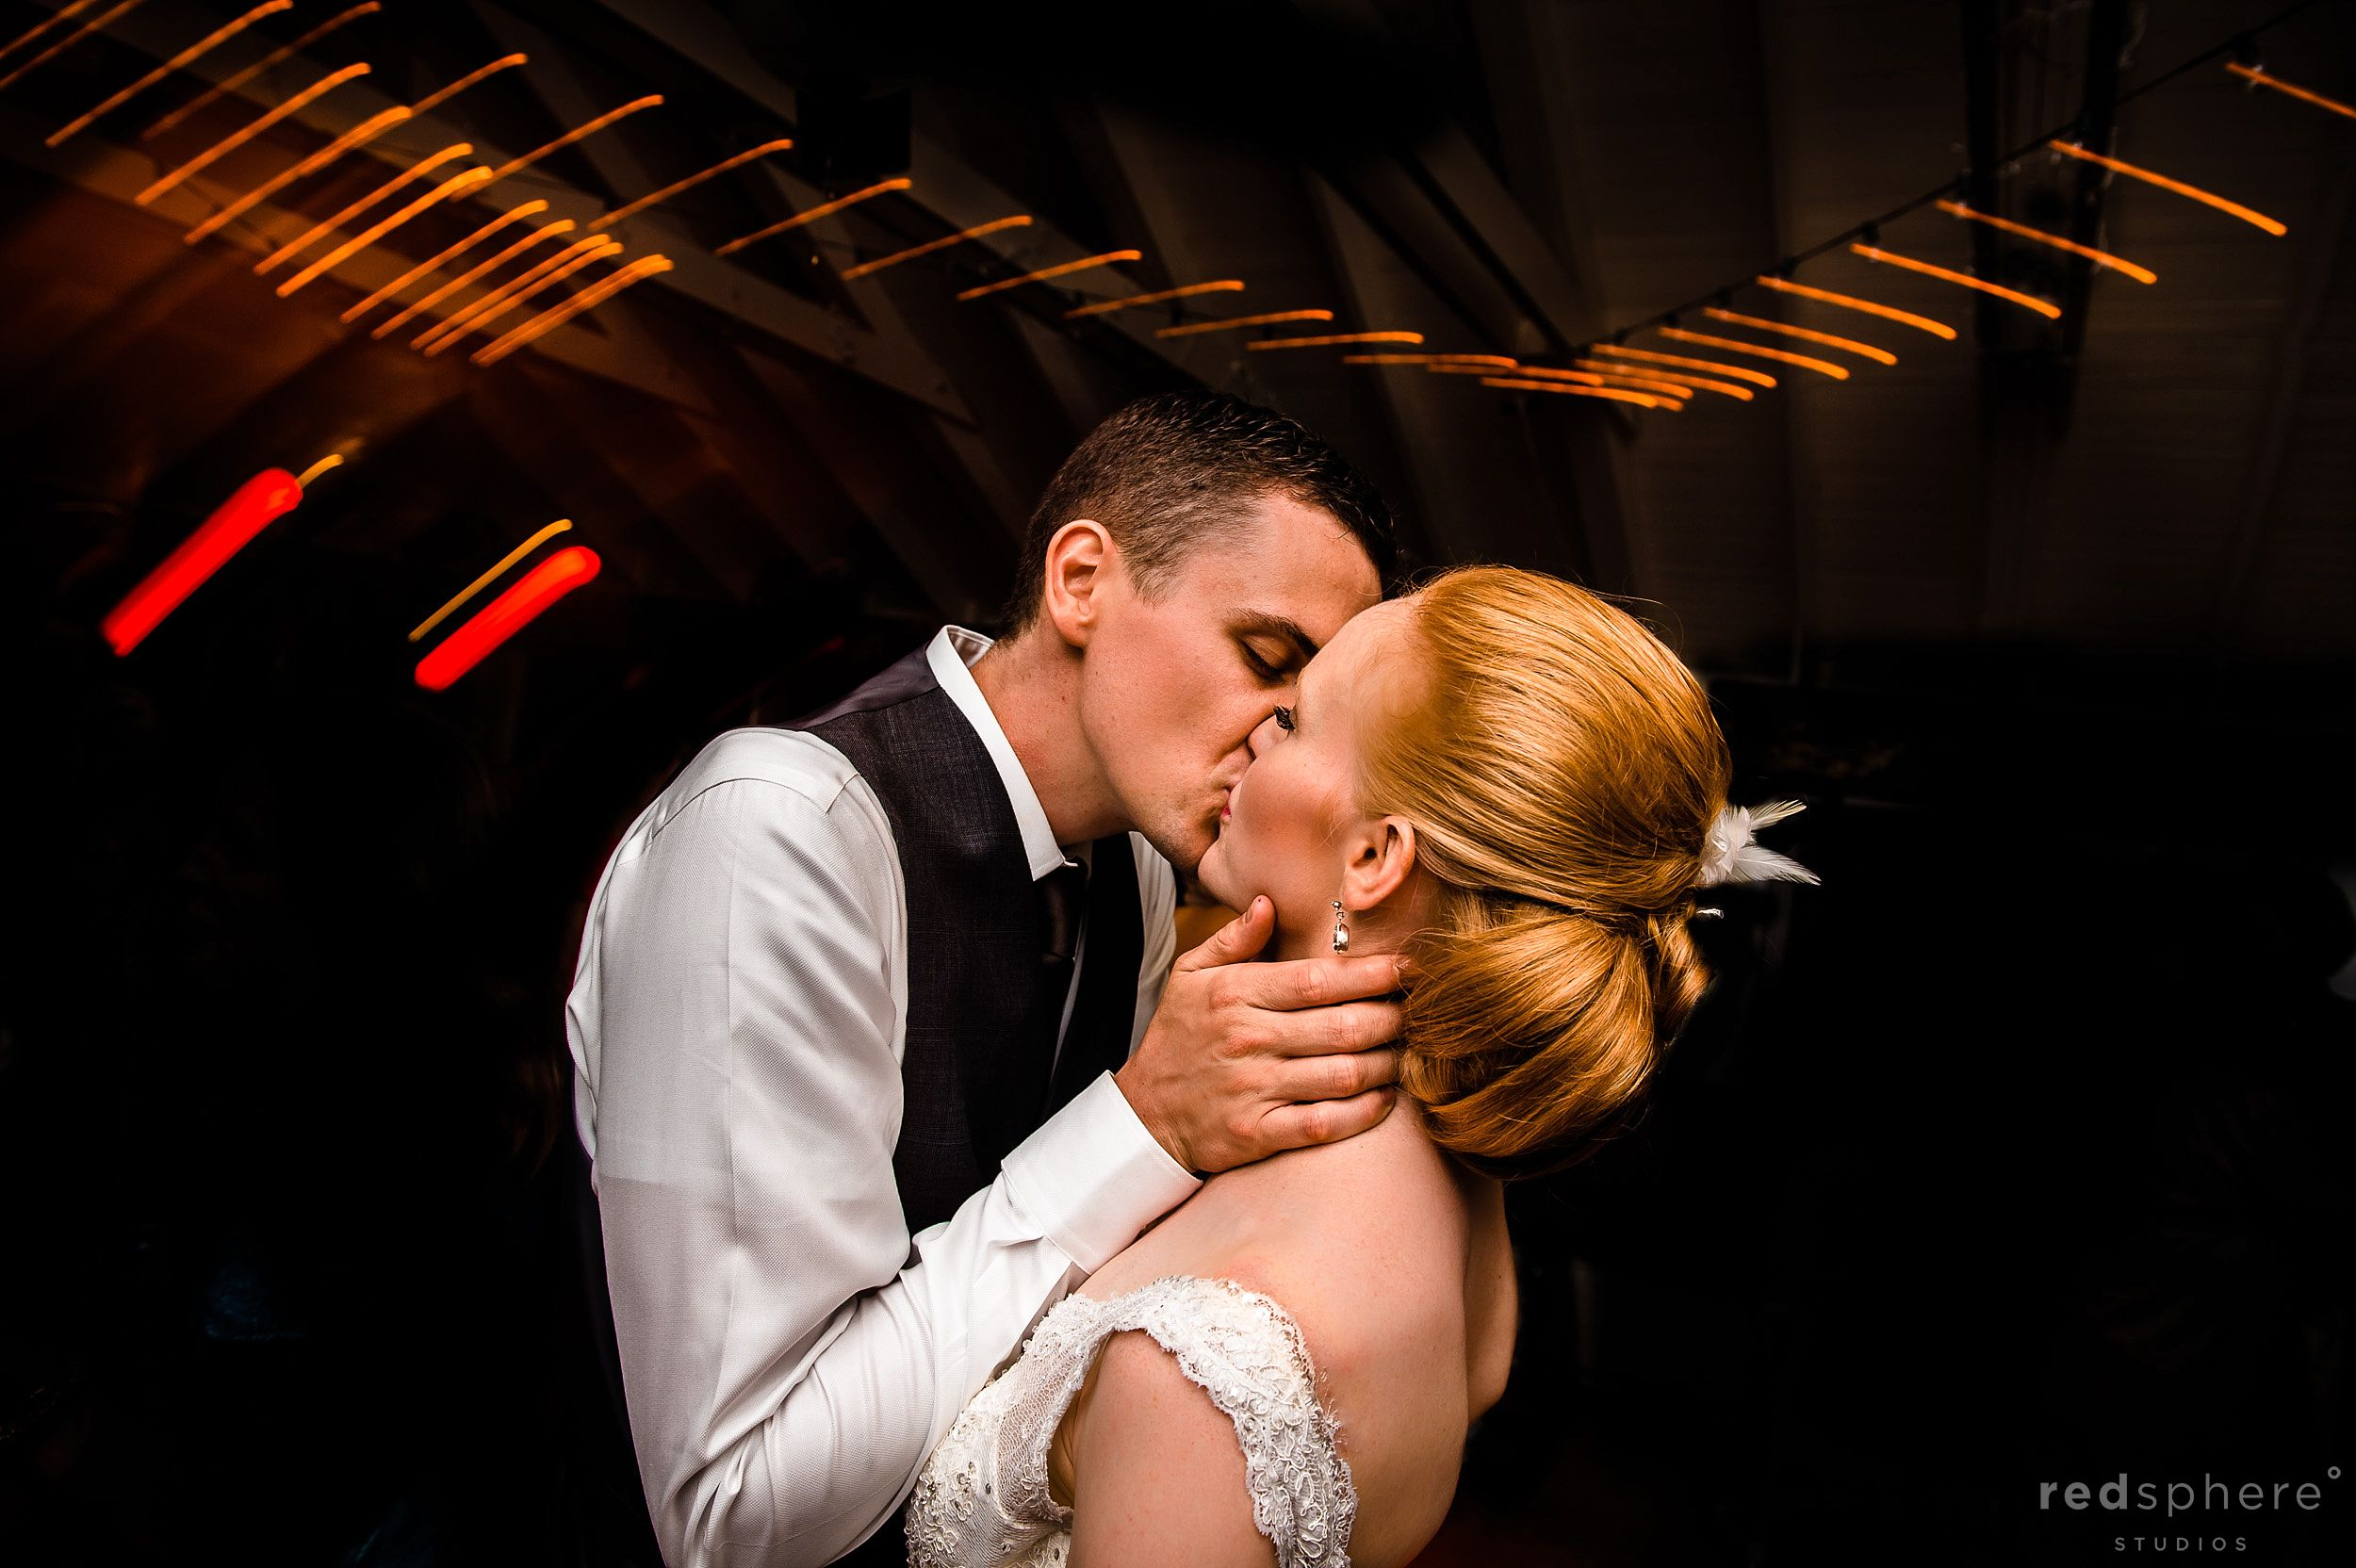 Bride and Groom Kiss While Dancing at Chapel Island Wedding Reception